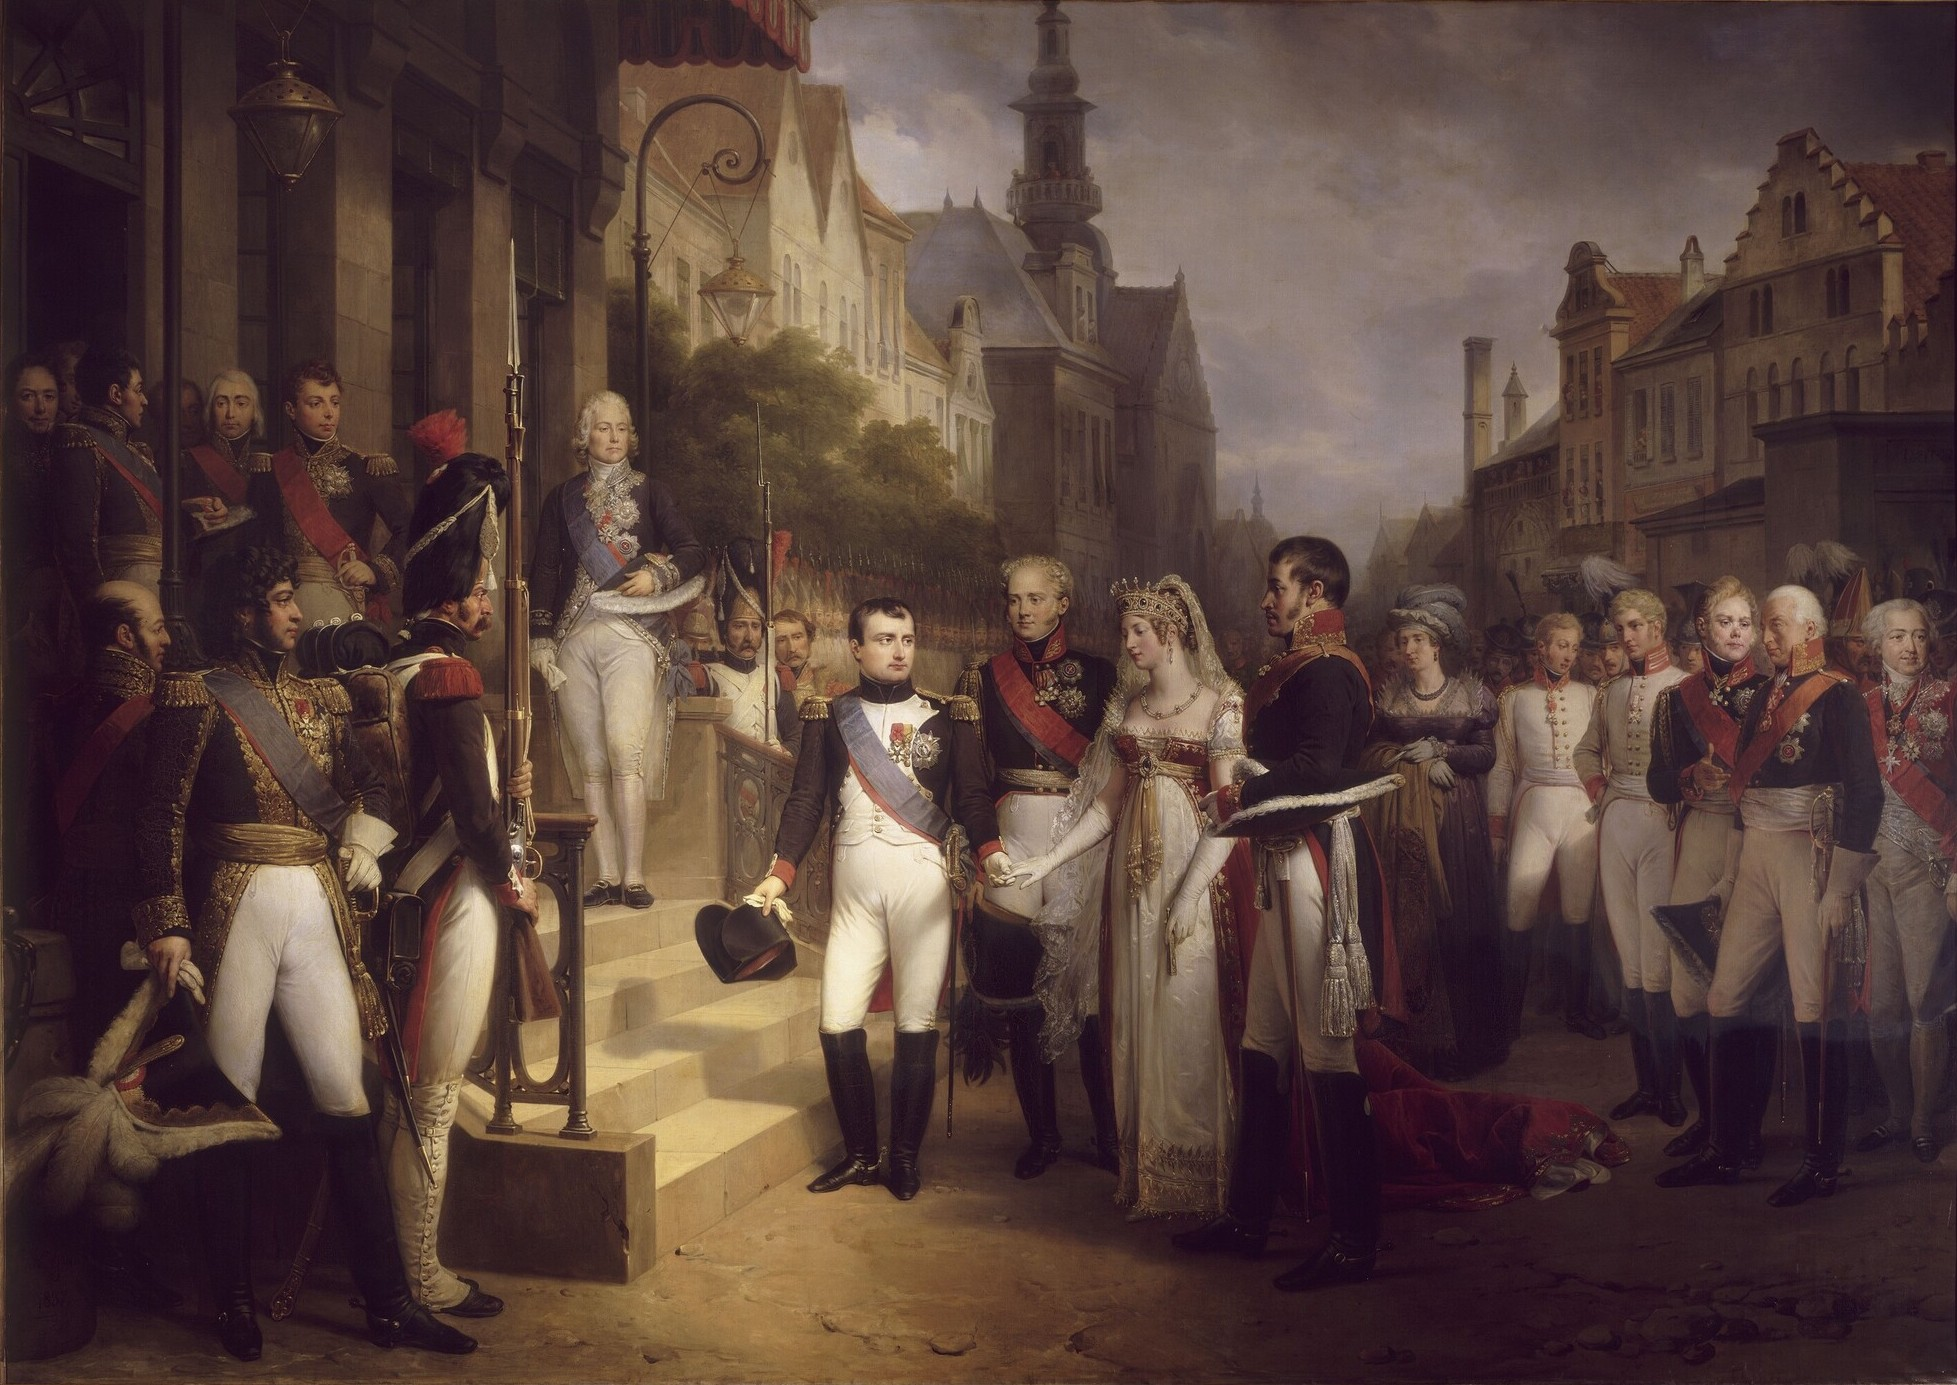 Napoleon and Queen Louisa at Tilsit